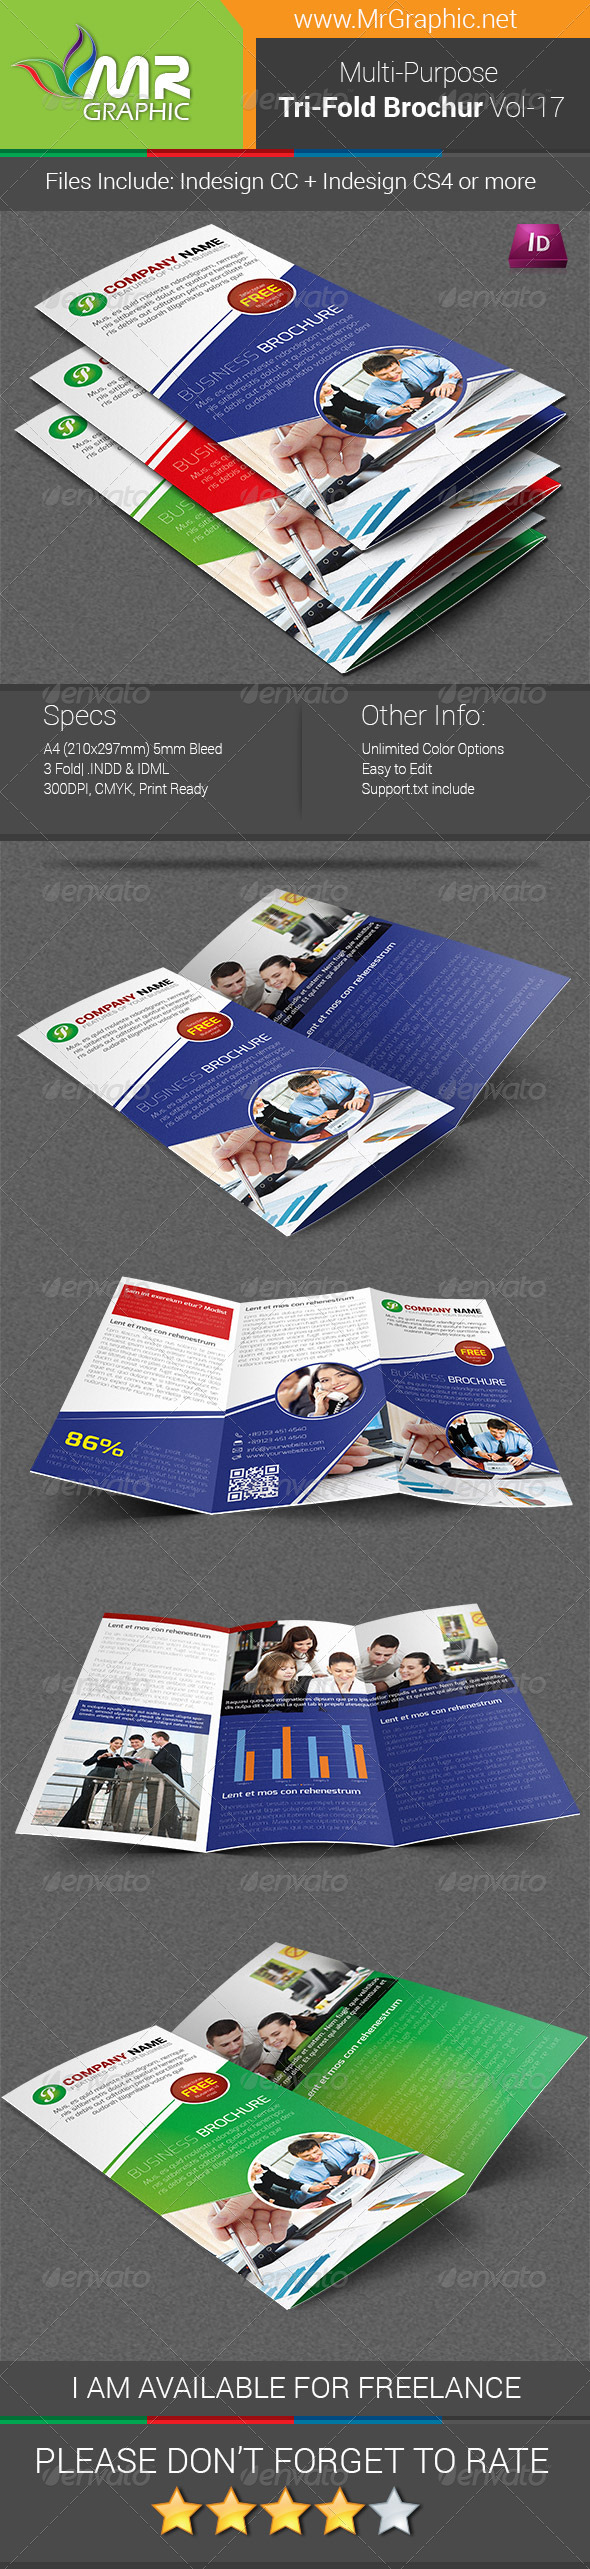 GraphicRiver Multipurpose Business Tri-Fold Brochure Vol-17 6570273